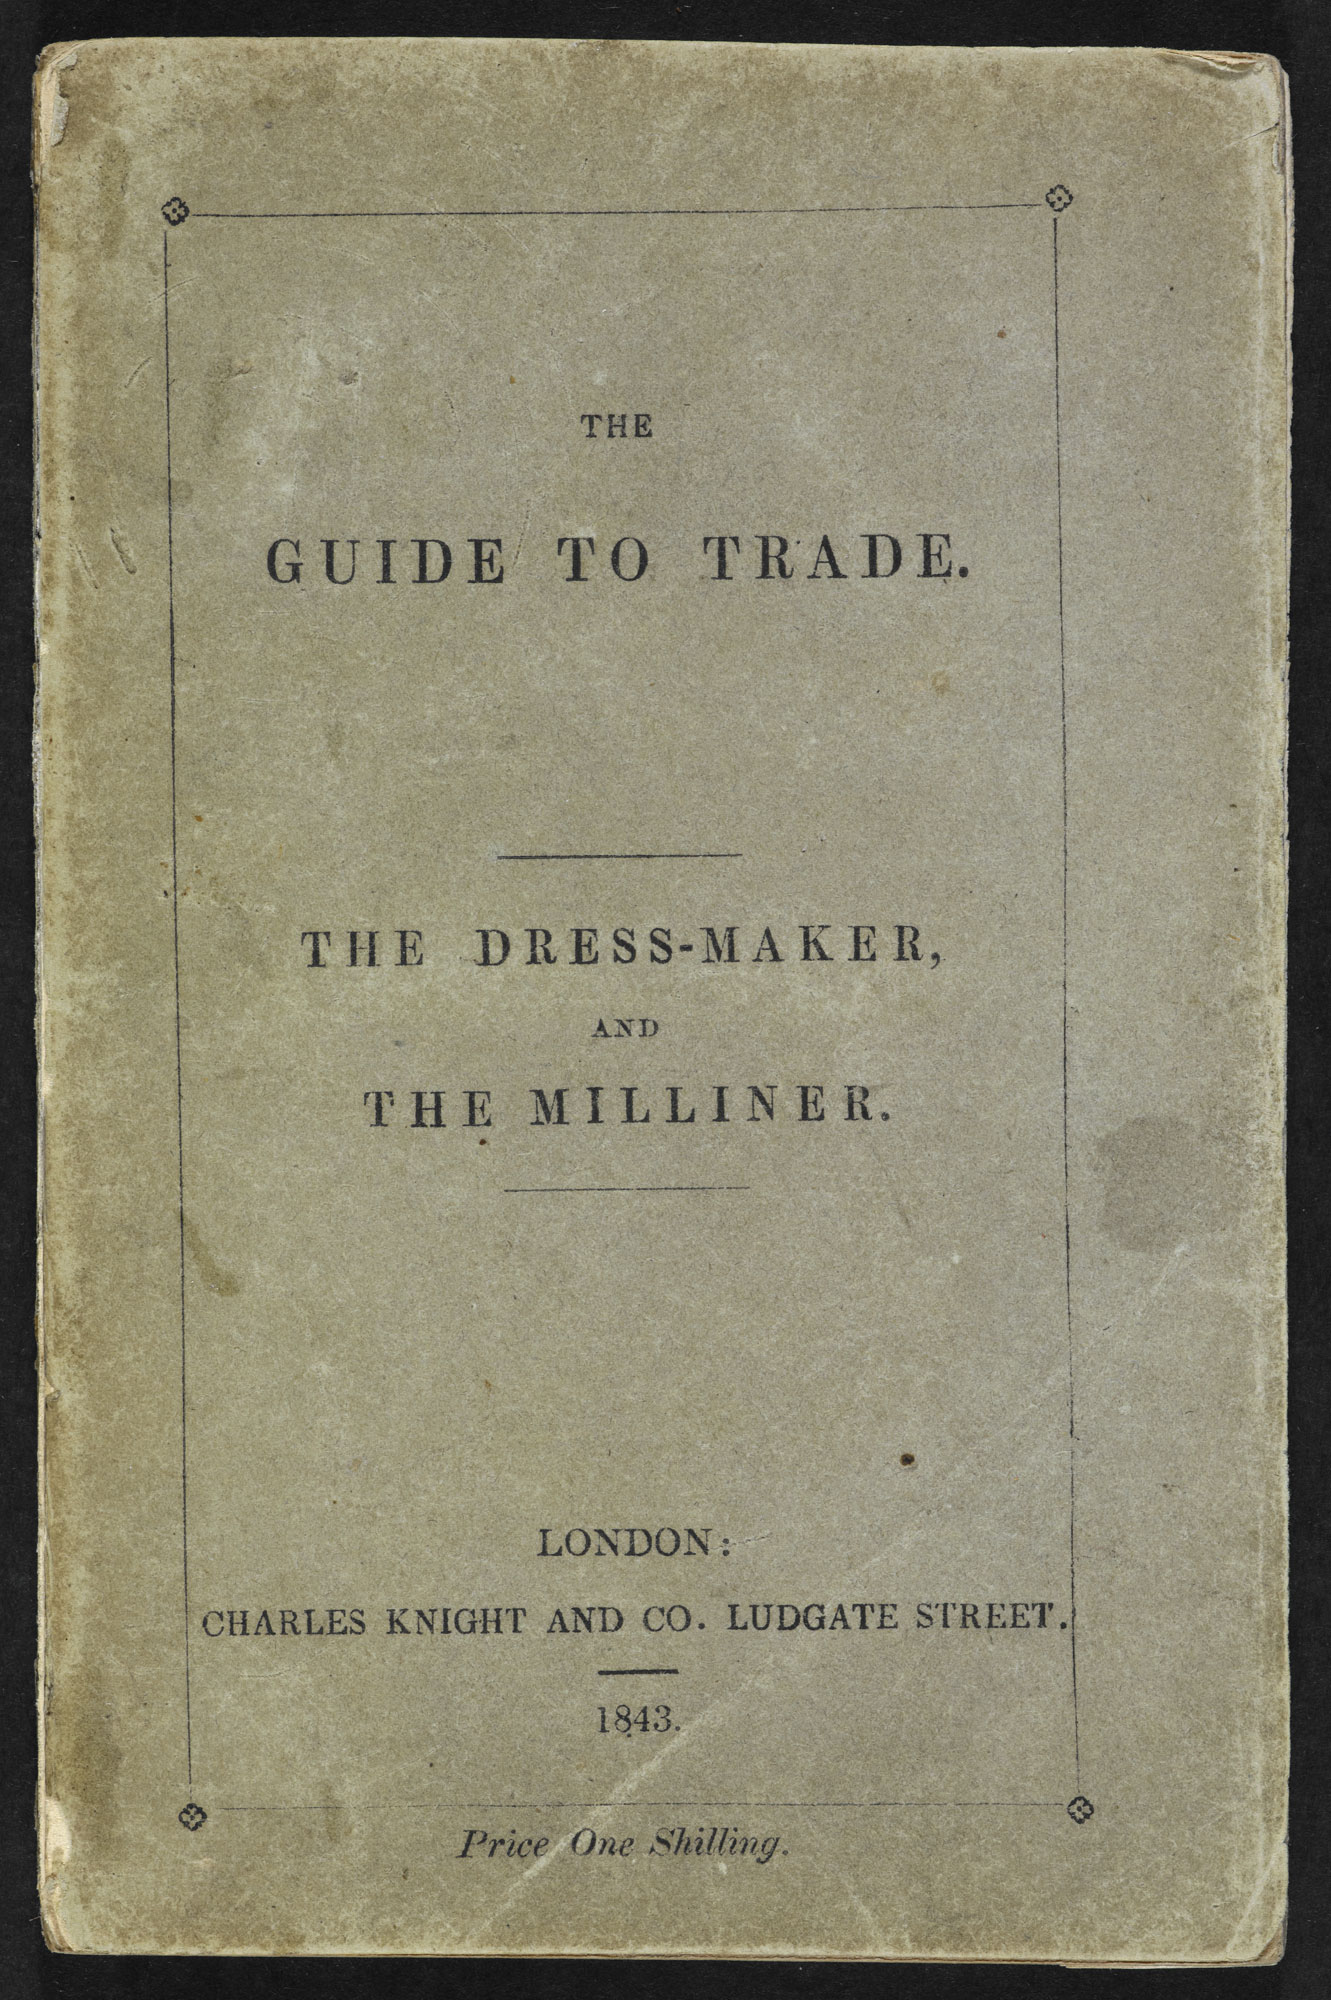 The Guide to Trade: The Dress-maker, and the Milliner [page: front cover]